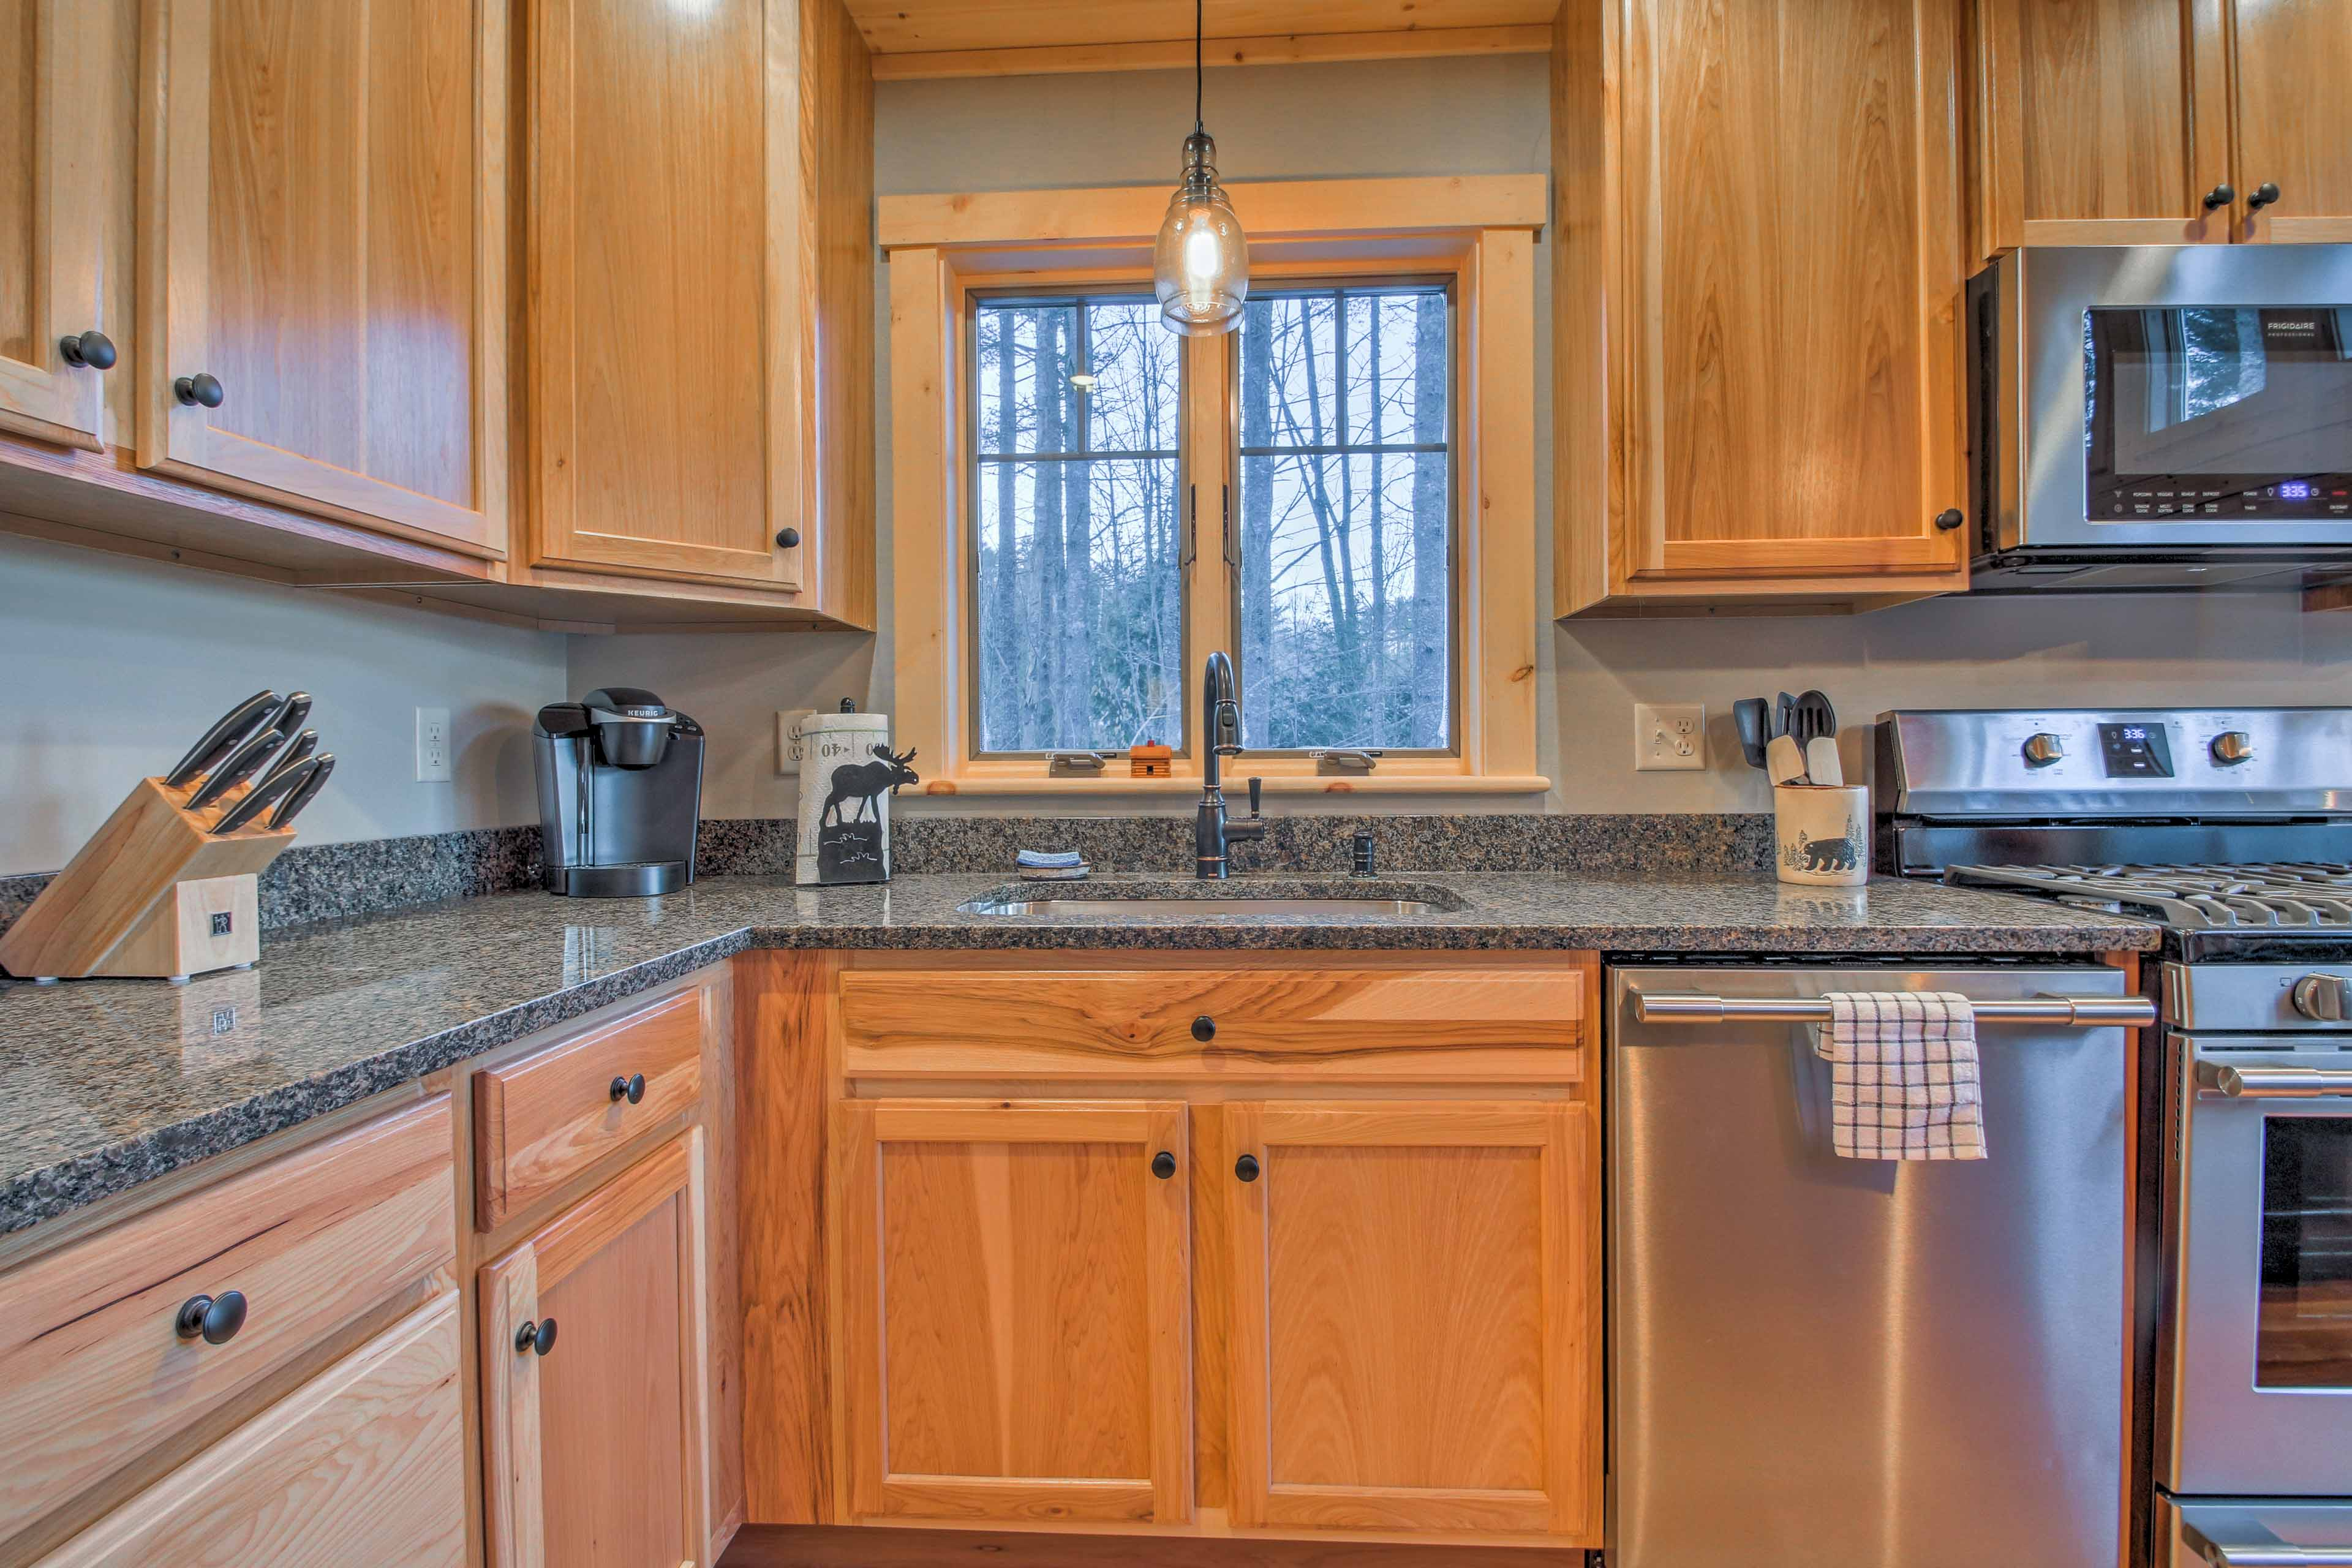 The fully equipped kitchen has stainless steel appliances and granite counters.